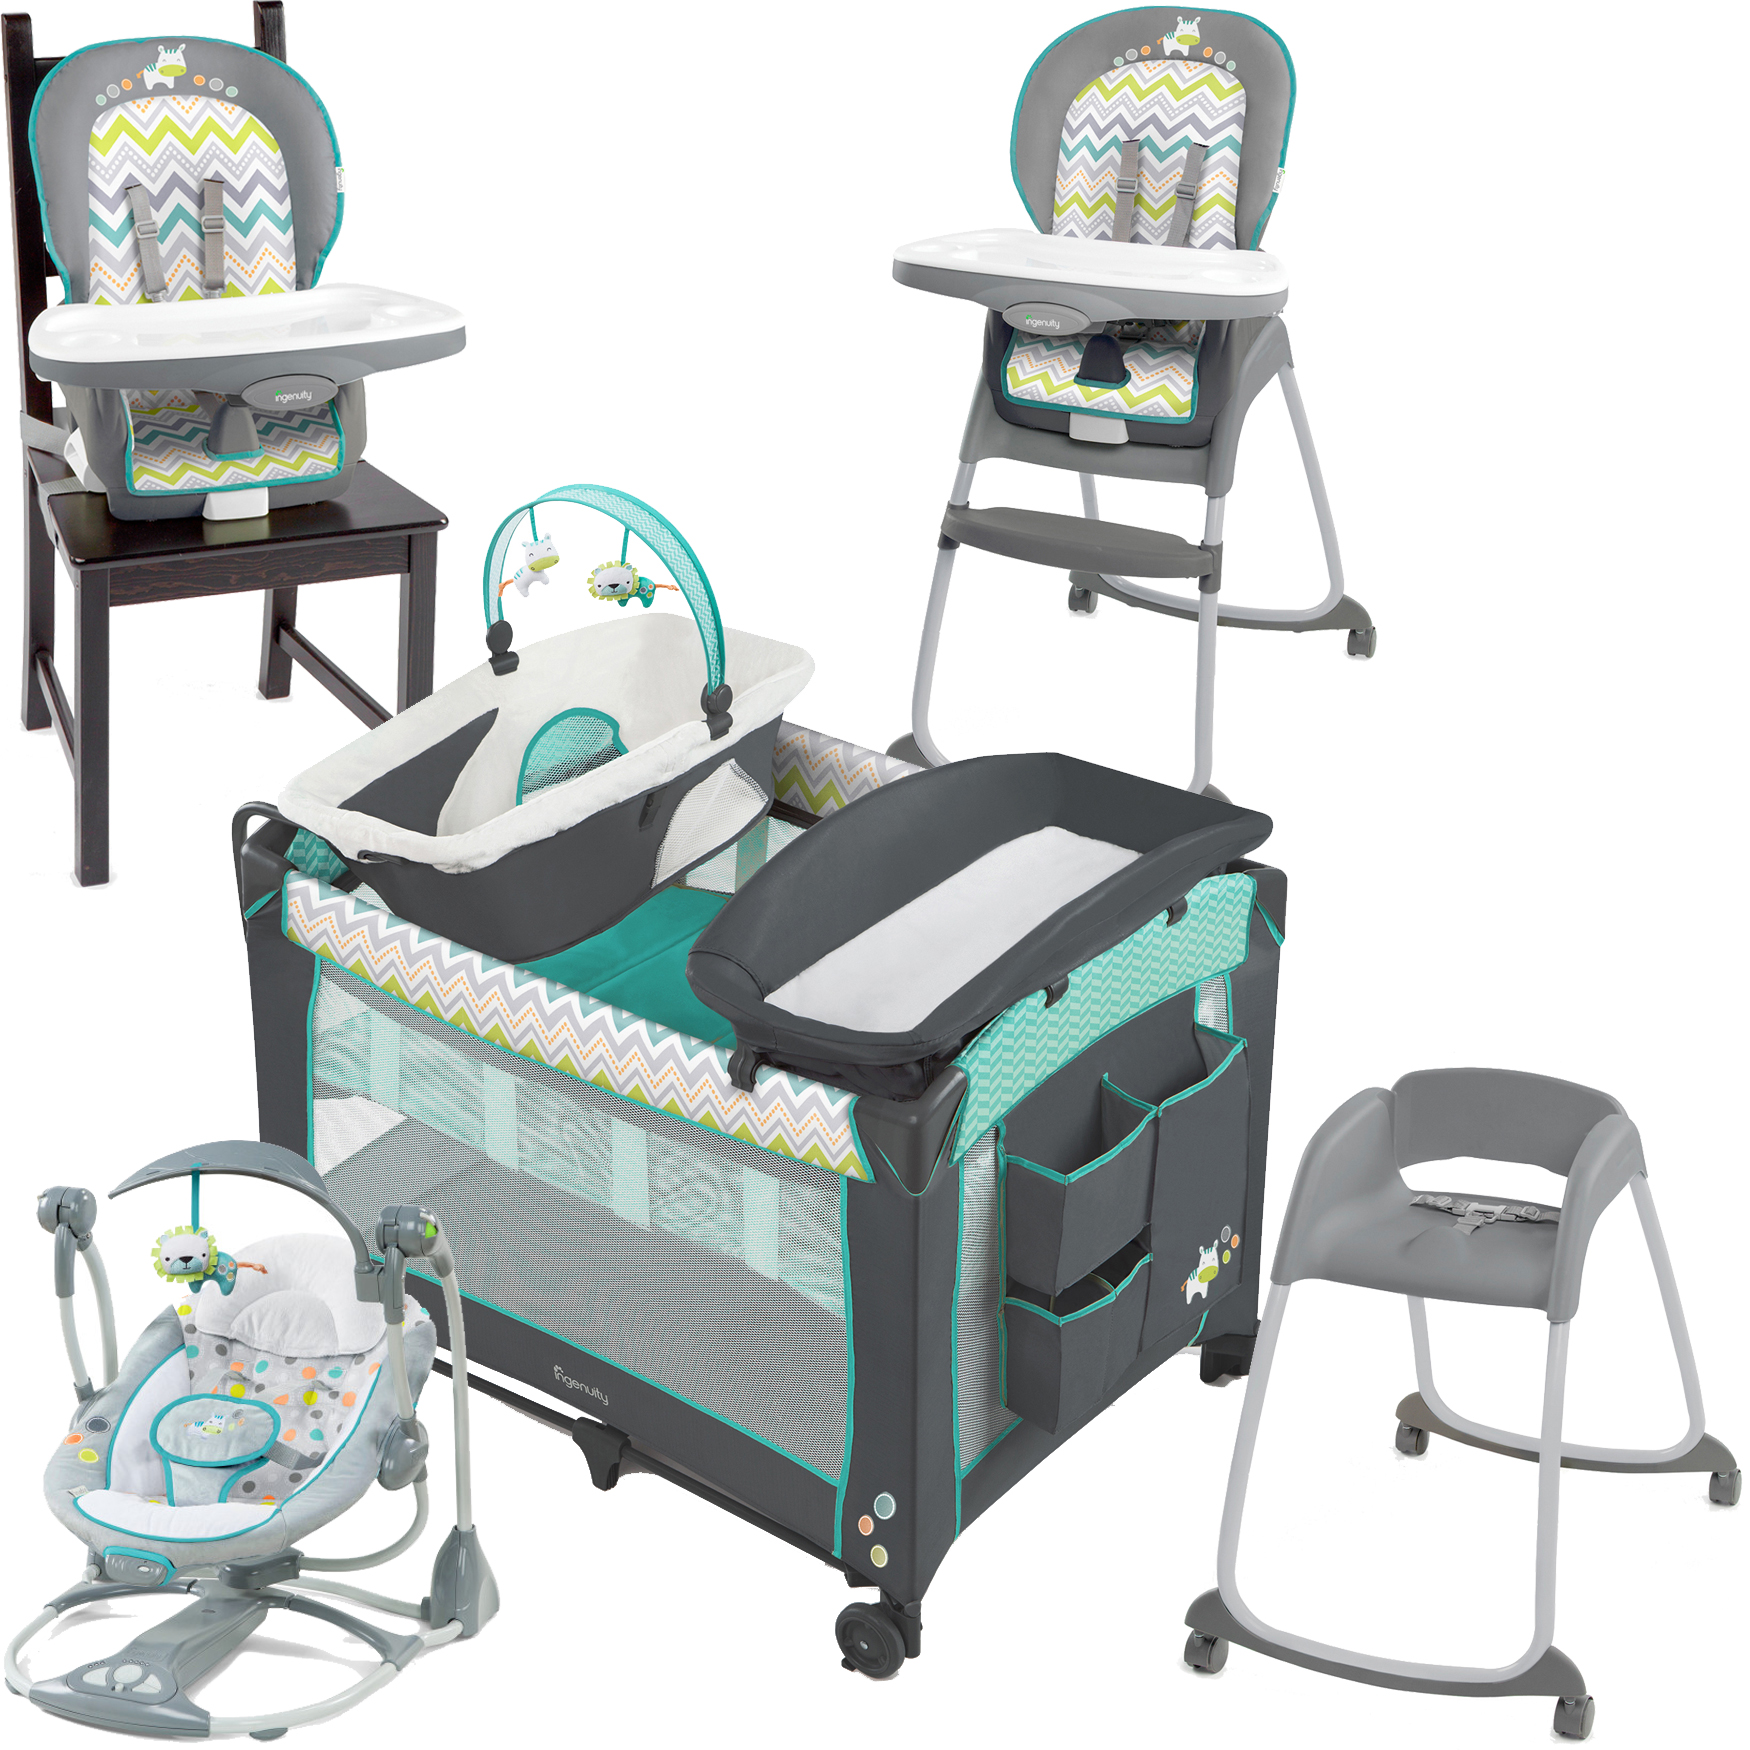 Ingenuity Ridgedale Collection Playard Swing and High Chair